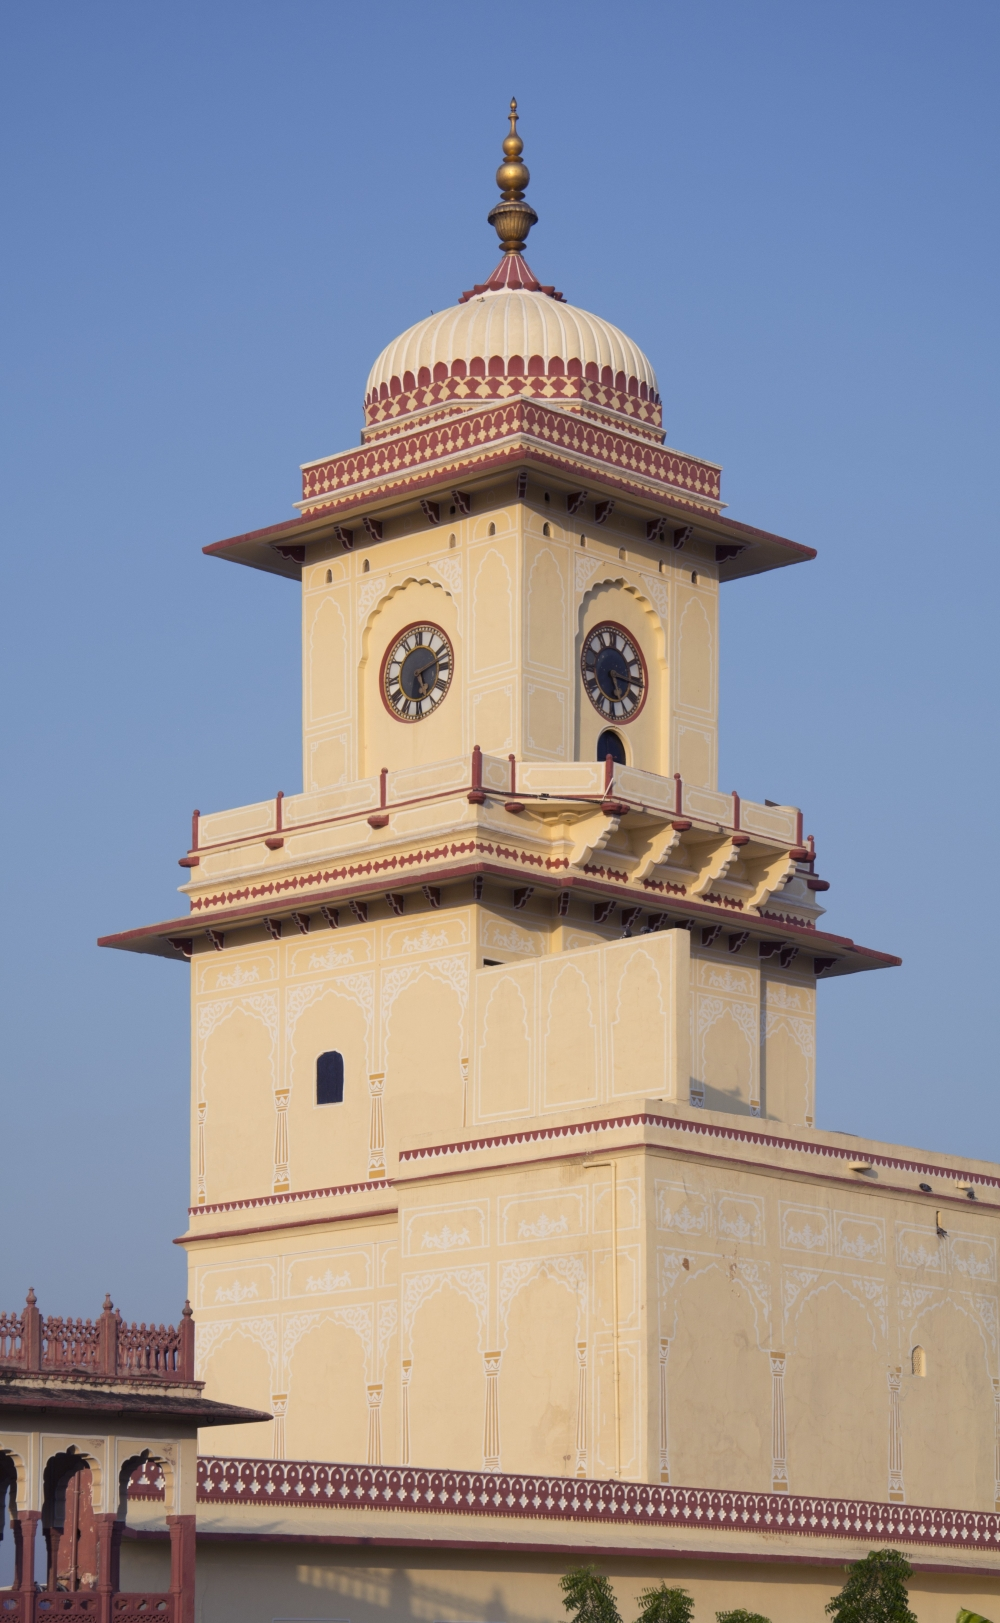 Fig.4: The clock at the City Palace ghanta ghar has four faces and is housed in the topmost floor of a quadrangular tower. A small wooden door visible under the clock's southern face allows entry into the clock room